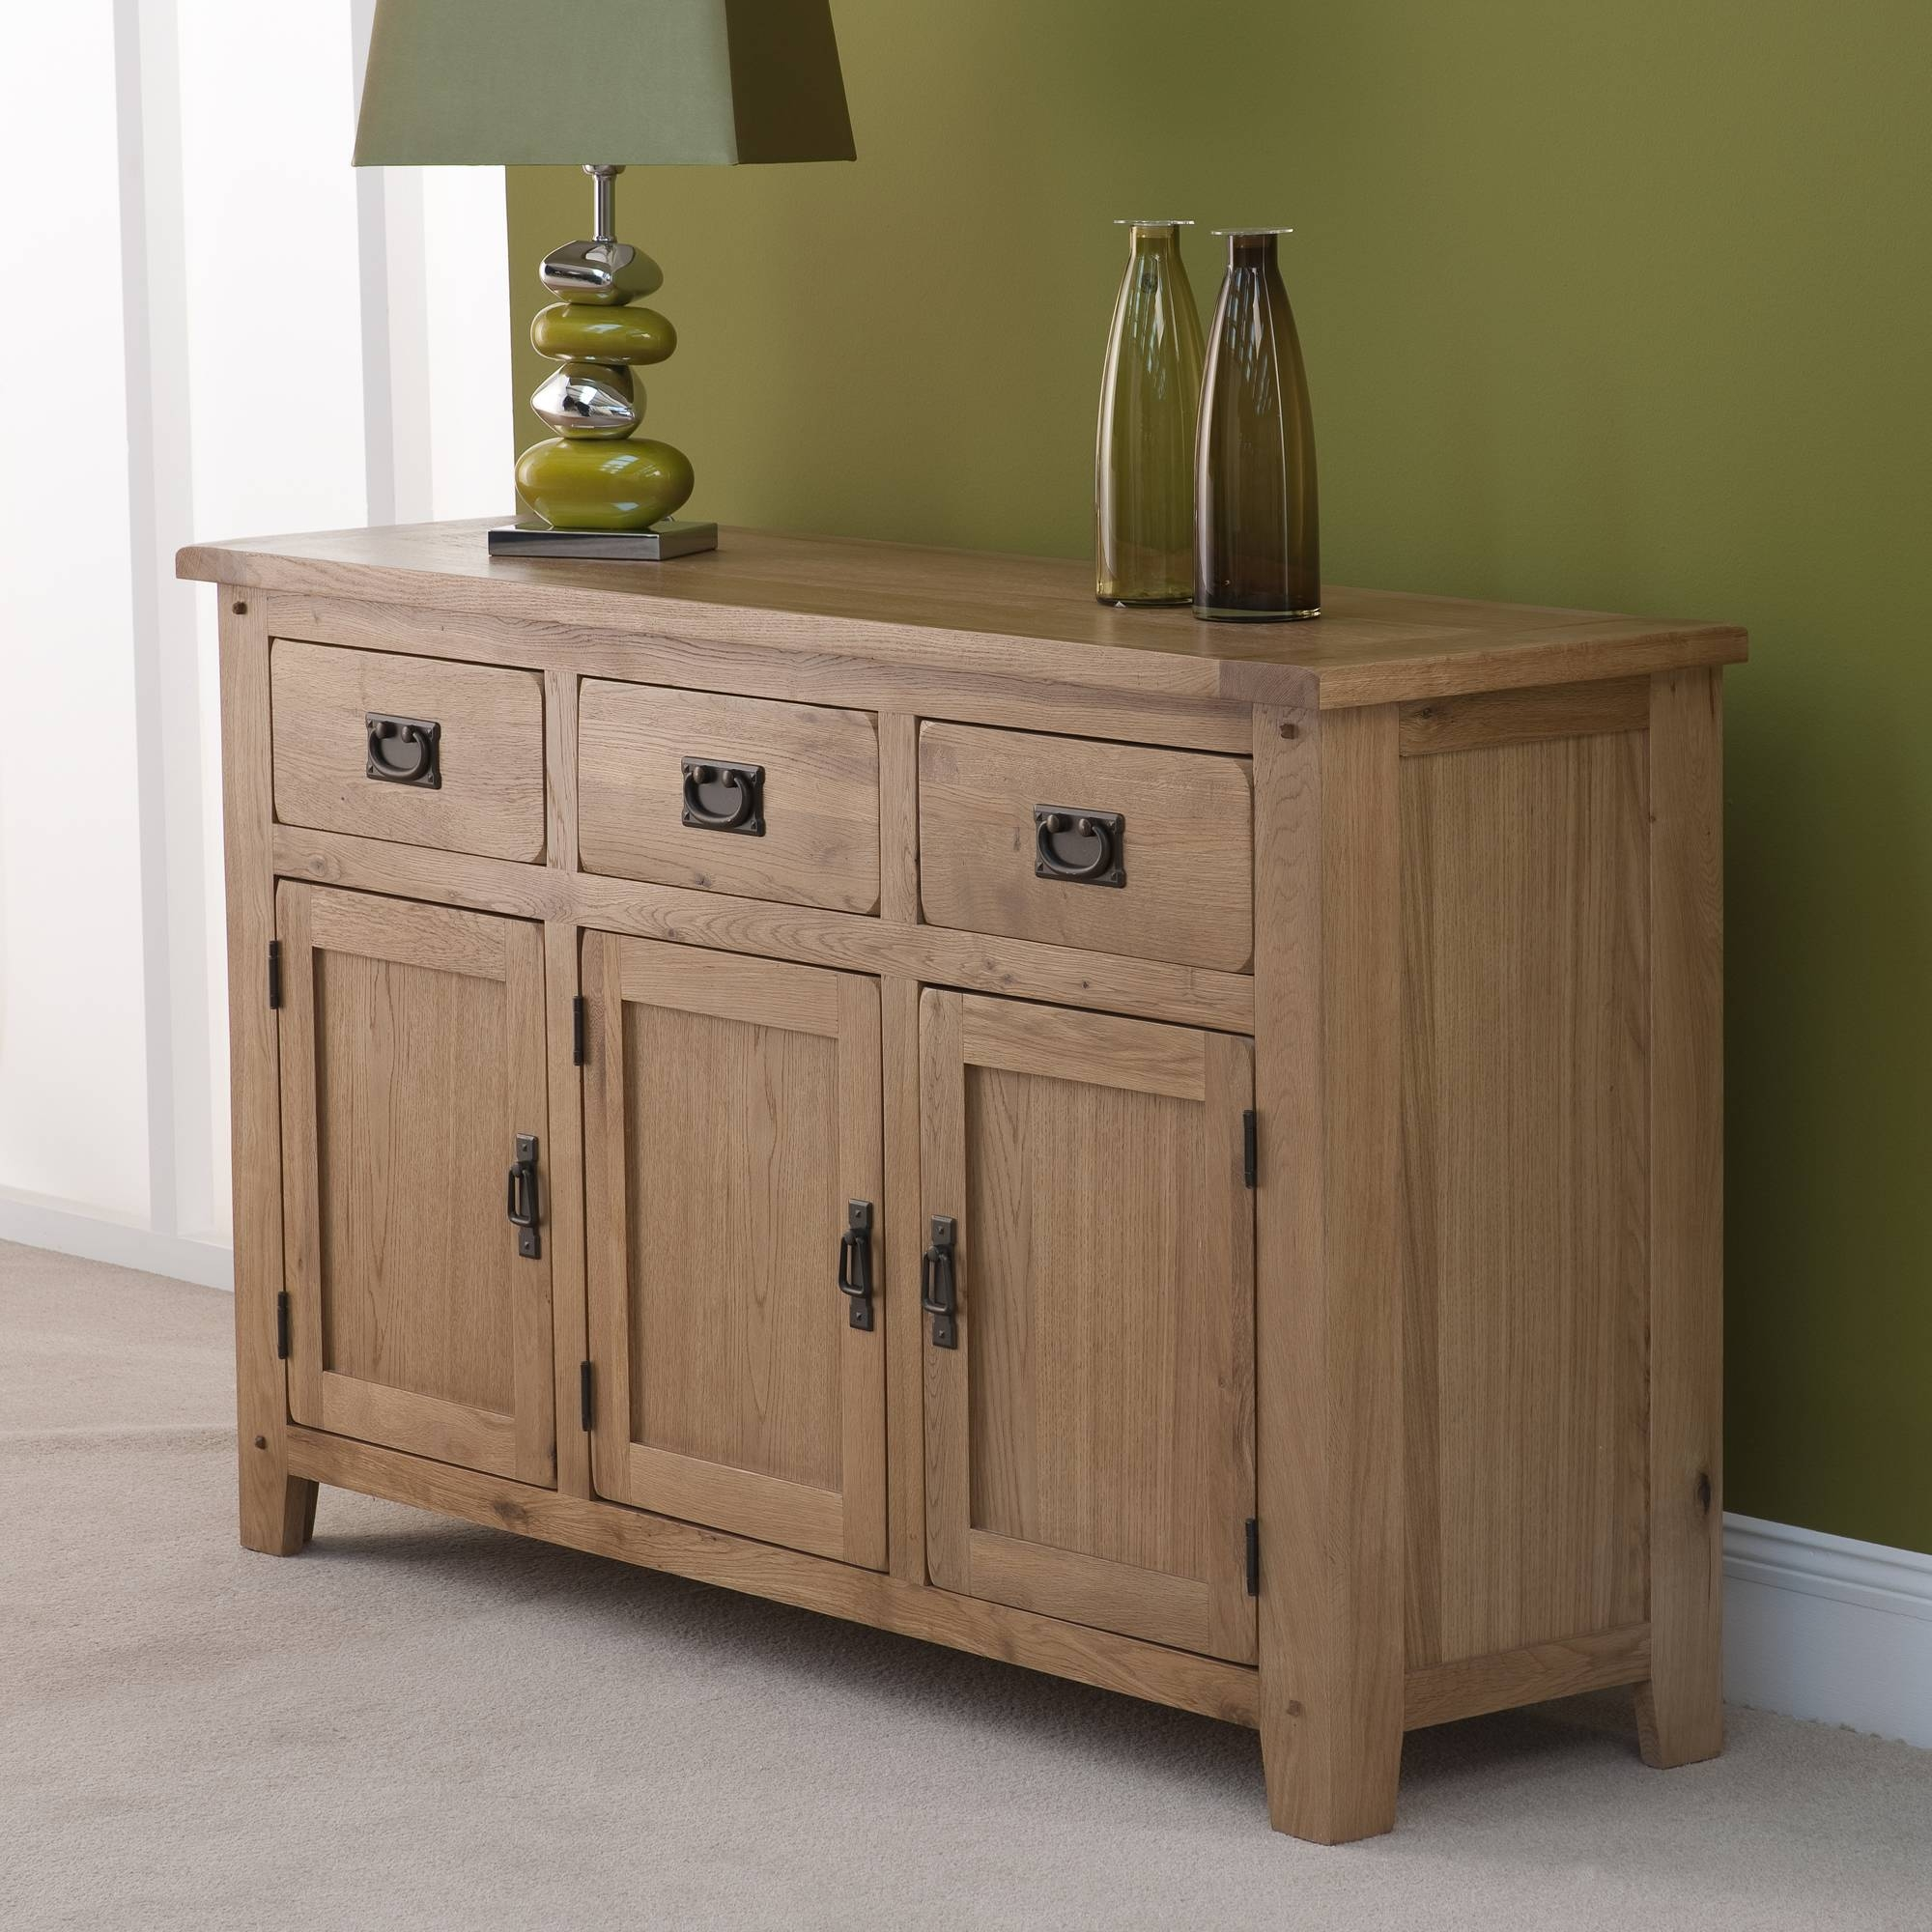 Lovely Dining Room Sideboards - Bjdgjy with Dining Sideboards (Image 14 of 15)